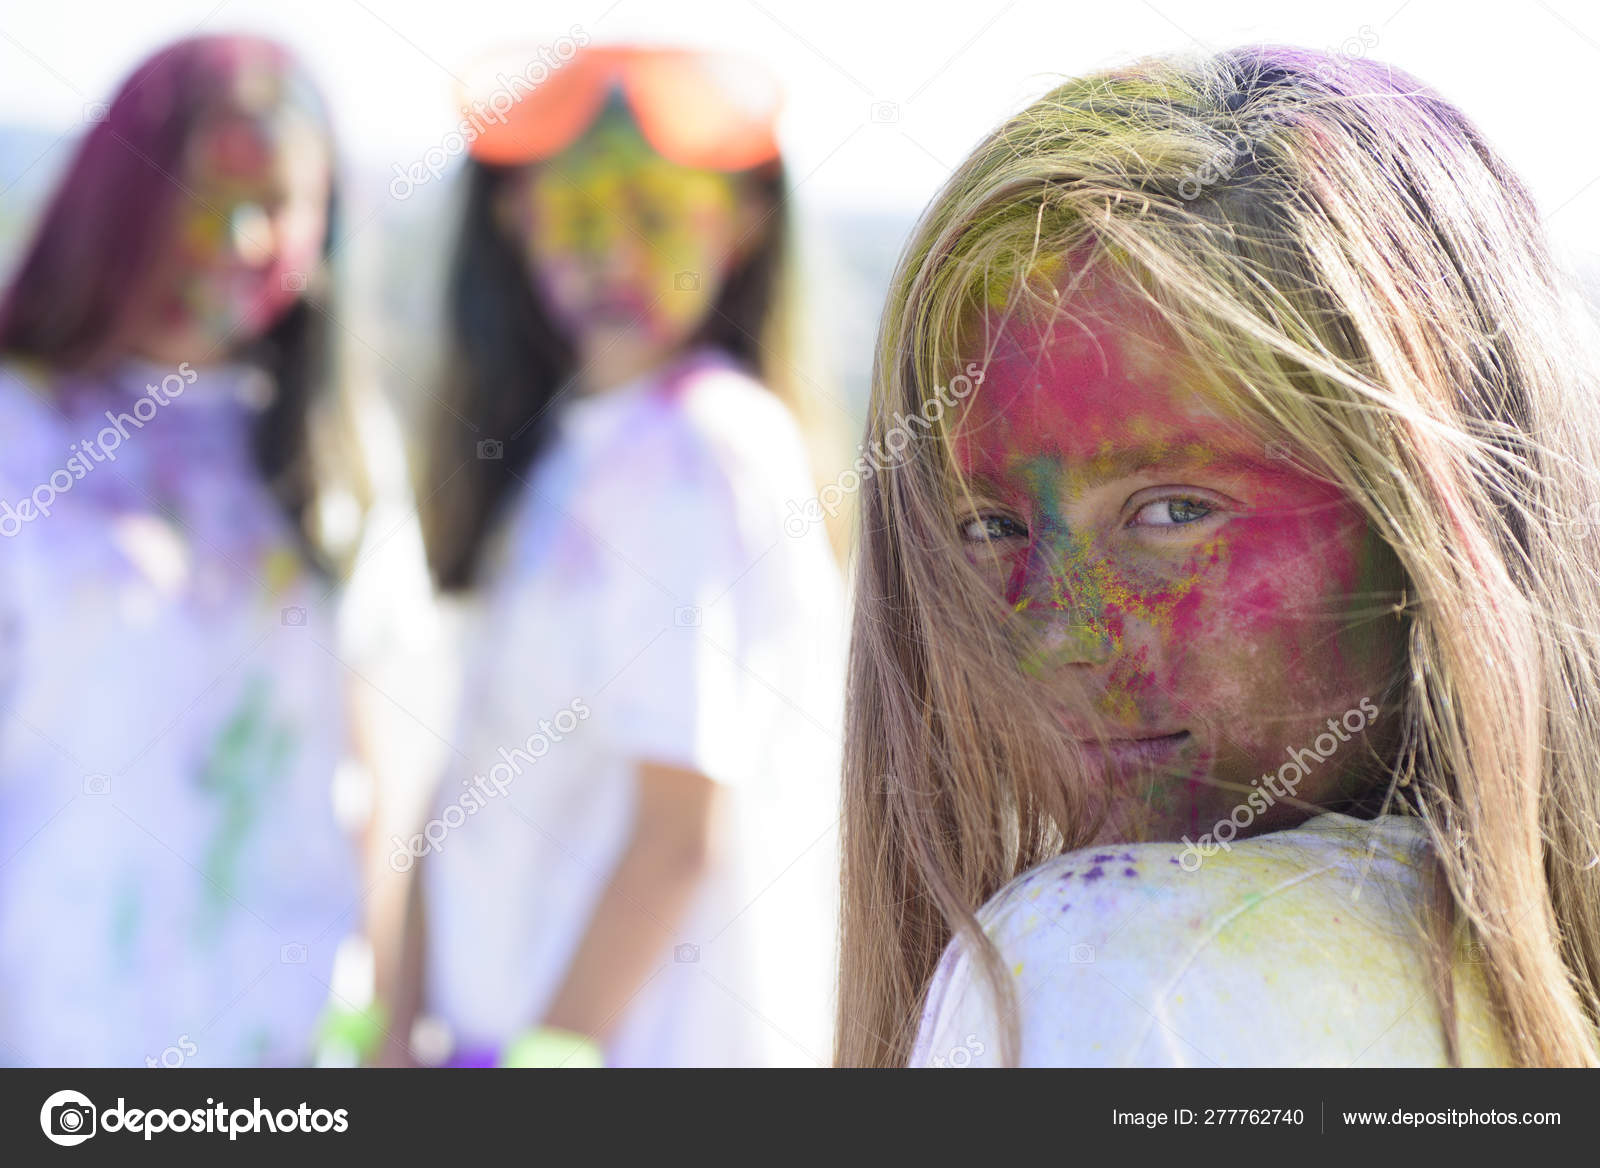 Positive And Cheerful Colorful Neon Paint Makeup Children